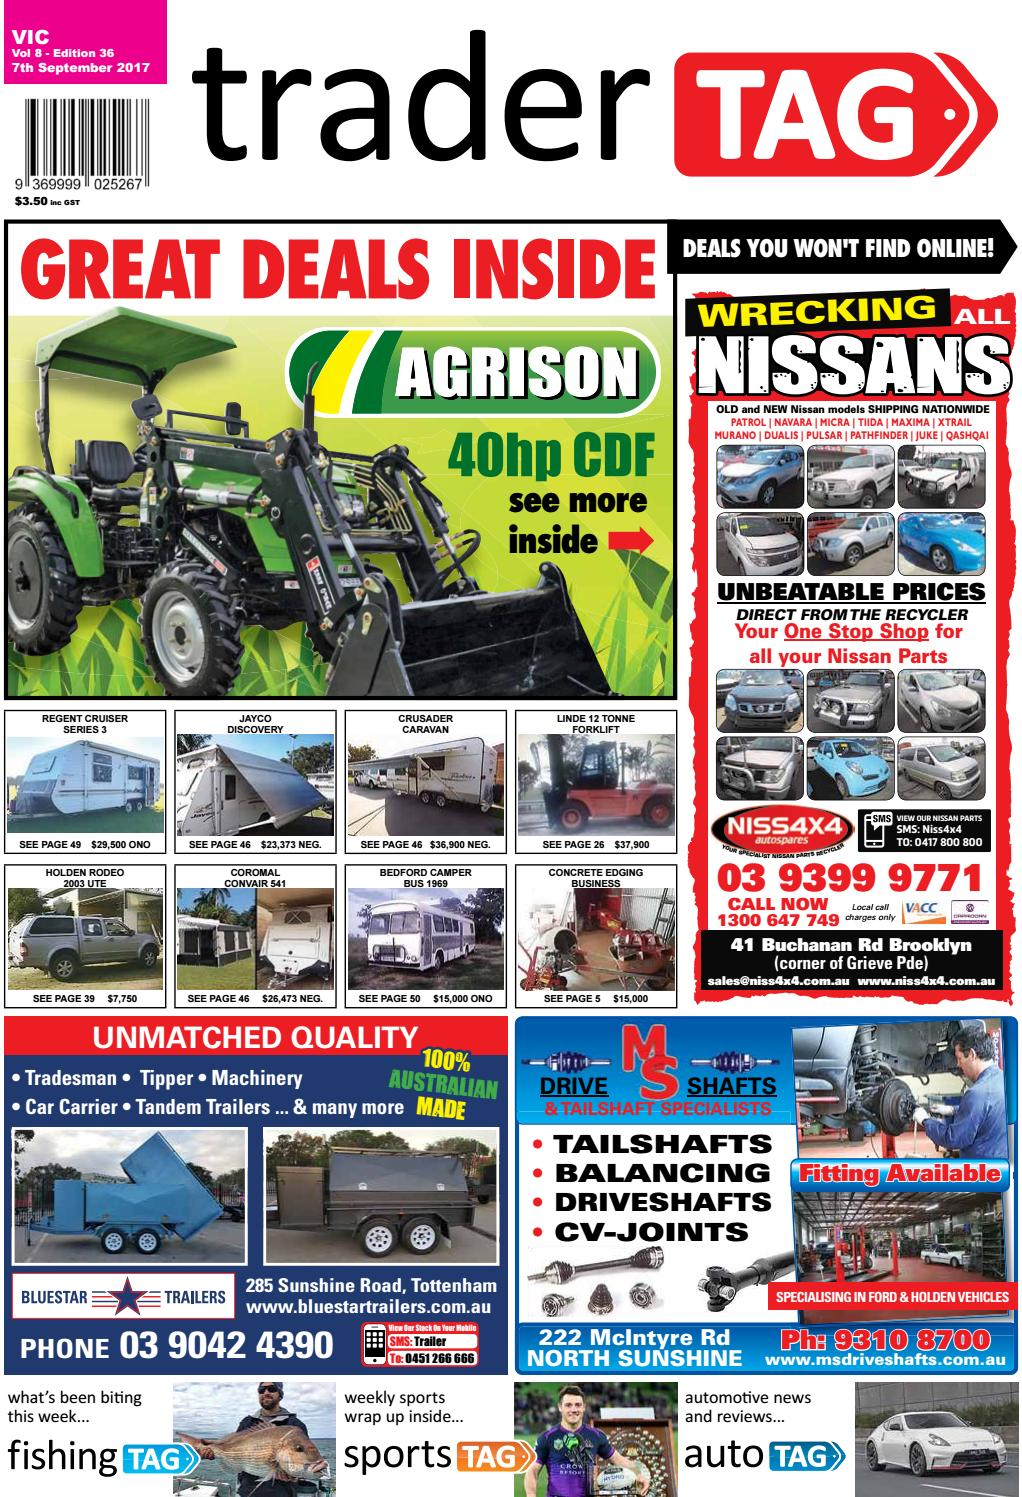 Tradertag Victoria Edition 36 2017 By Design Issuu Pilar 3 Way Type 2 For Pajero 2008 2015